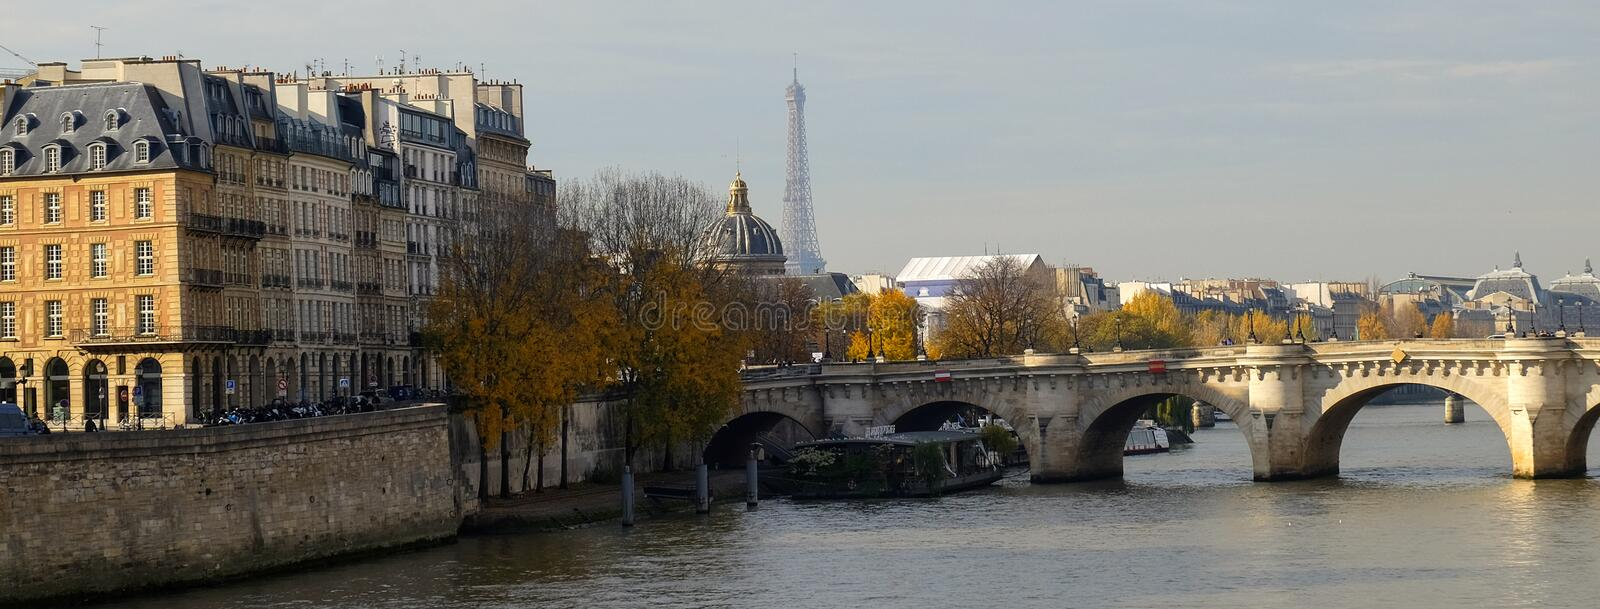 Paris in Autumn. The sun lights the river Seine, the turned yellow trees ashore and beautiful houses which make an architectural c royalty free stock images